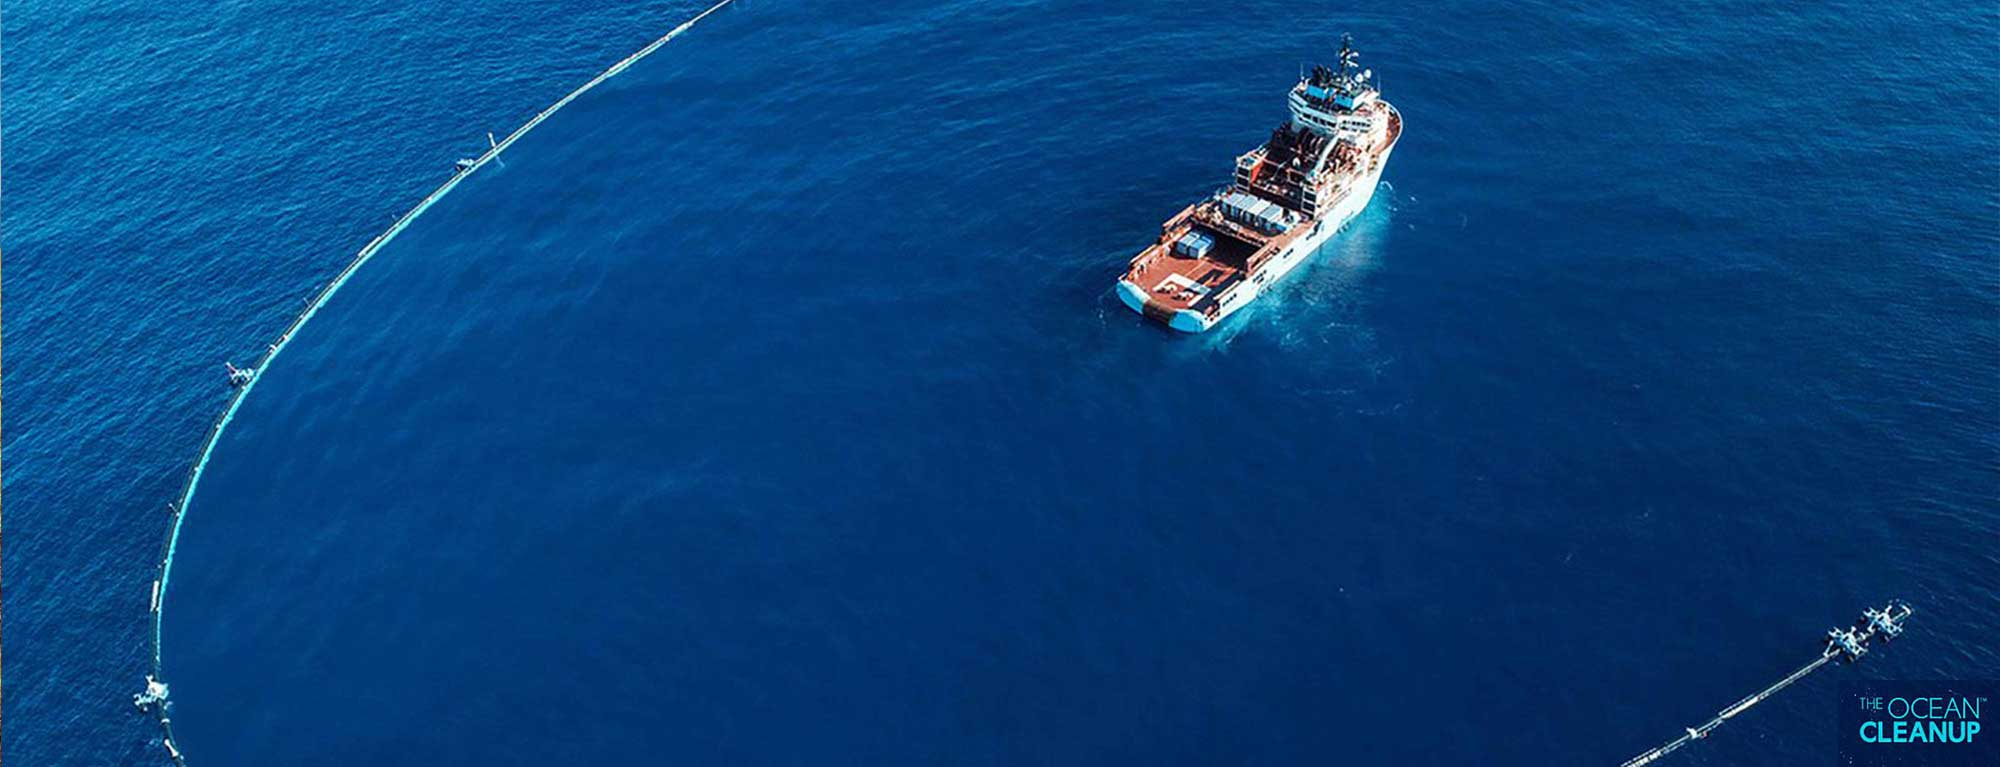 Vessel working at cleaning up floating plastic from the pacific Ocean